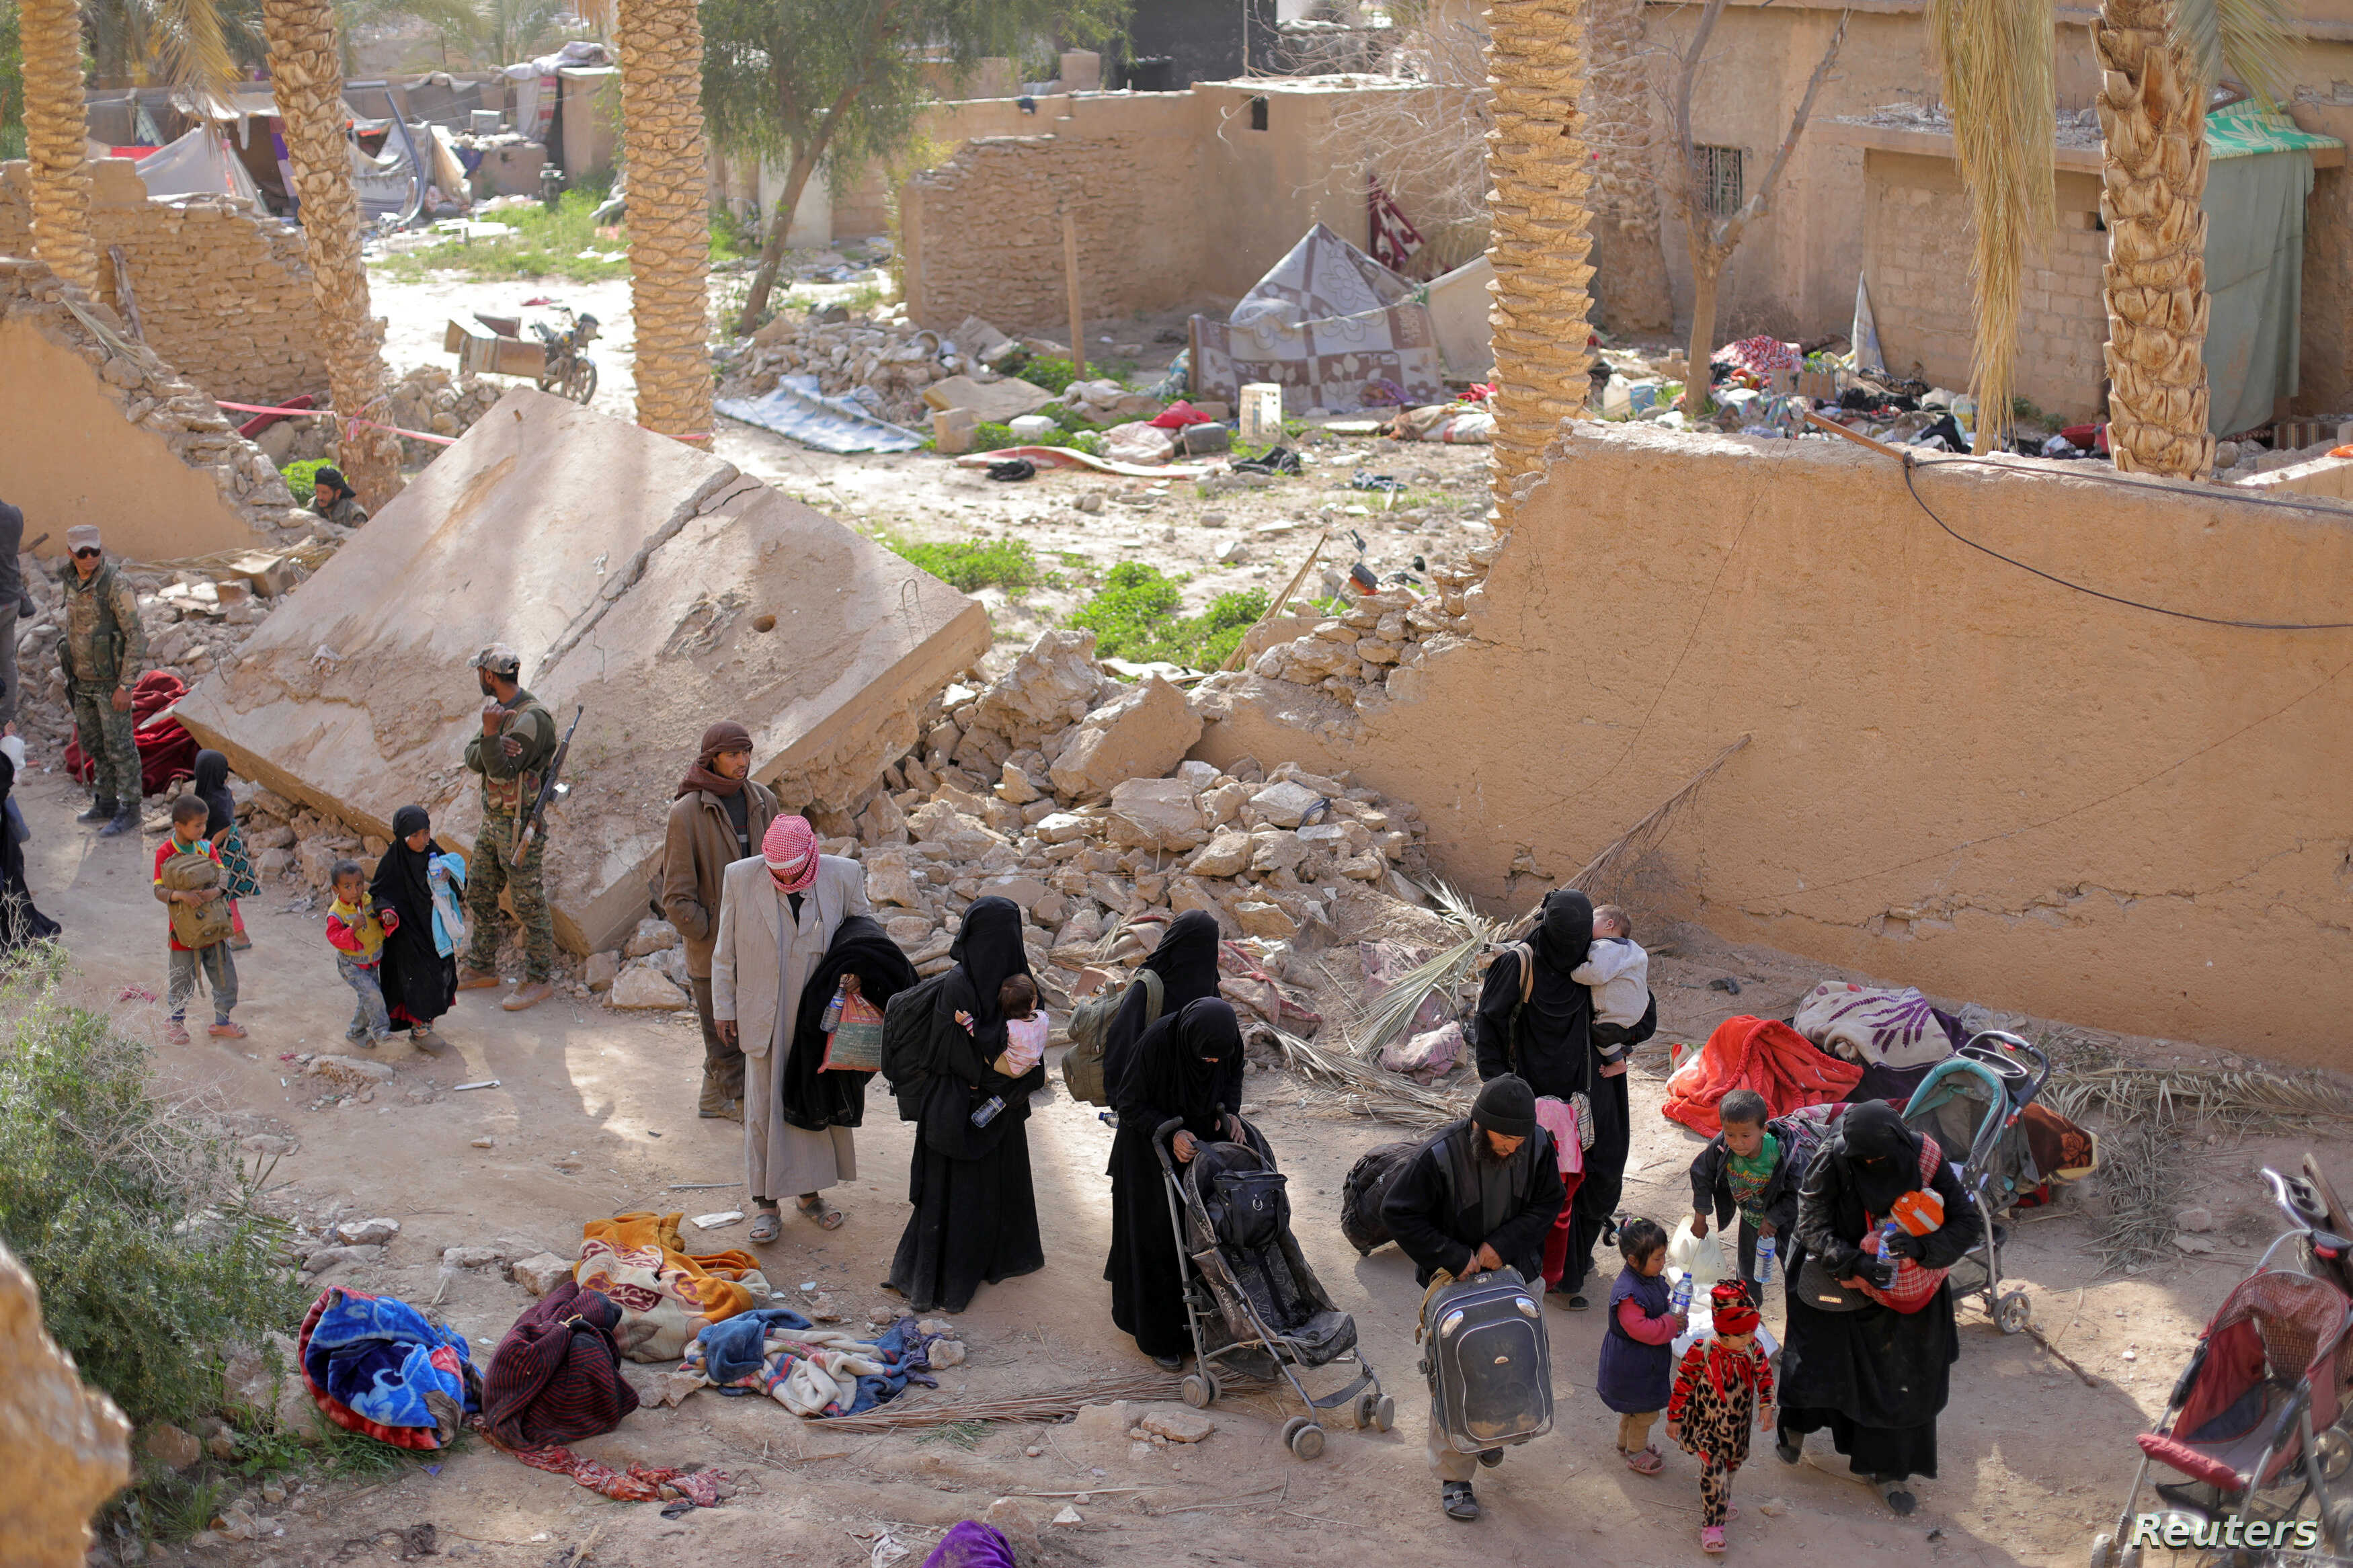 Islamic state fighters and their families walk as they surrendered in the village of Baghuz, Deir Al Zor province, Syria, March 12.